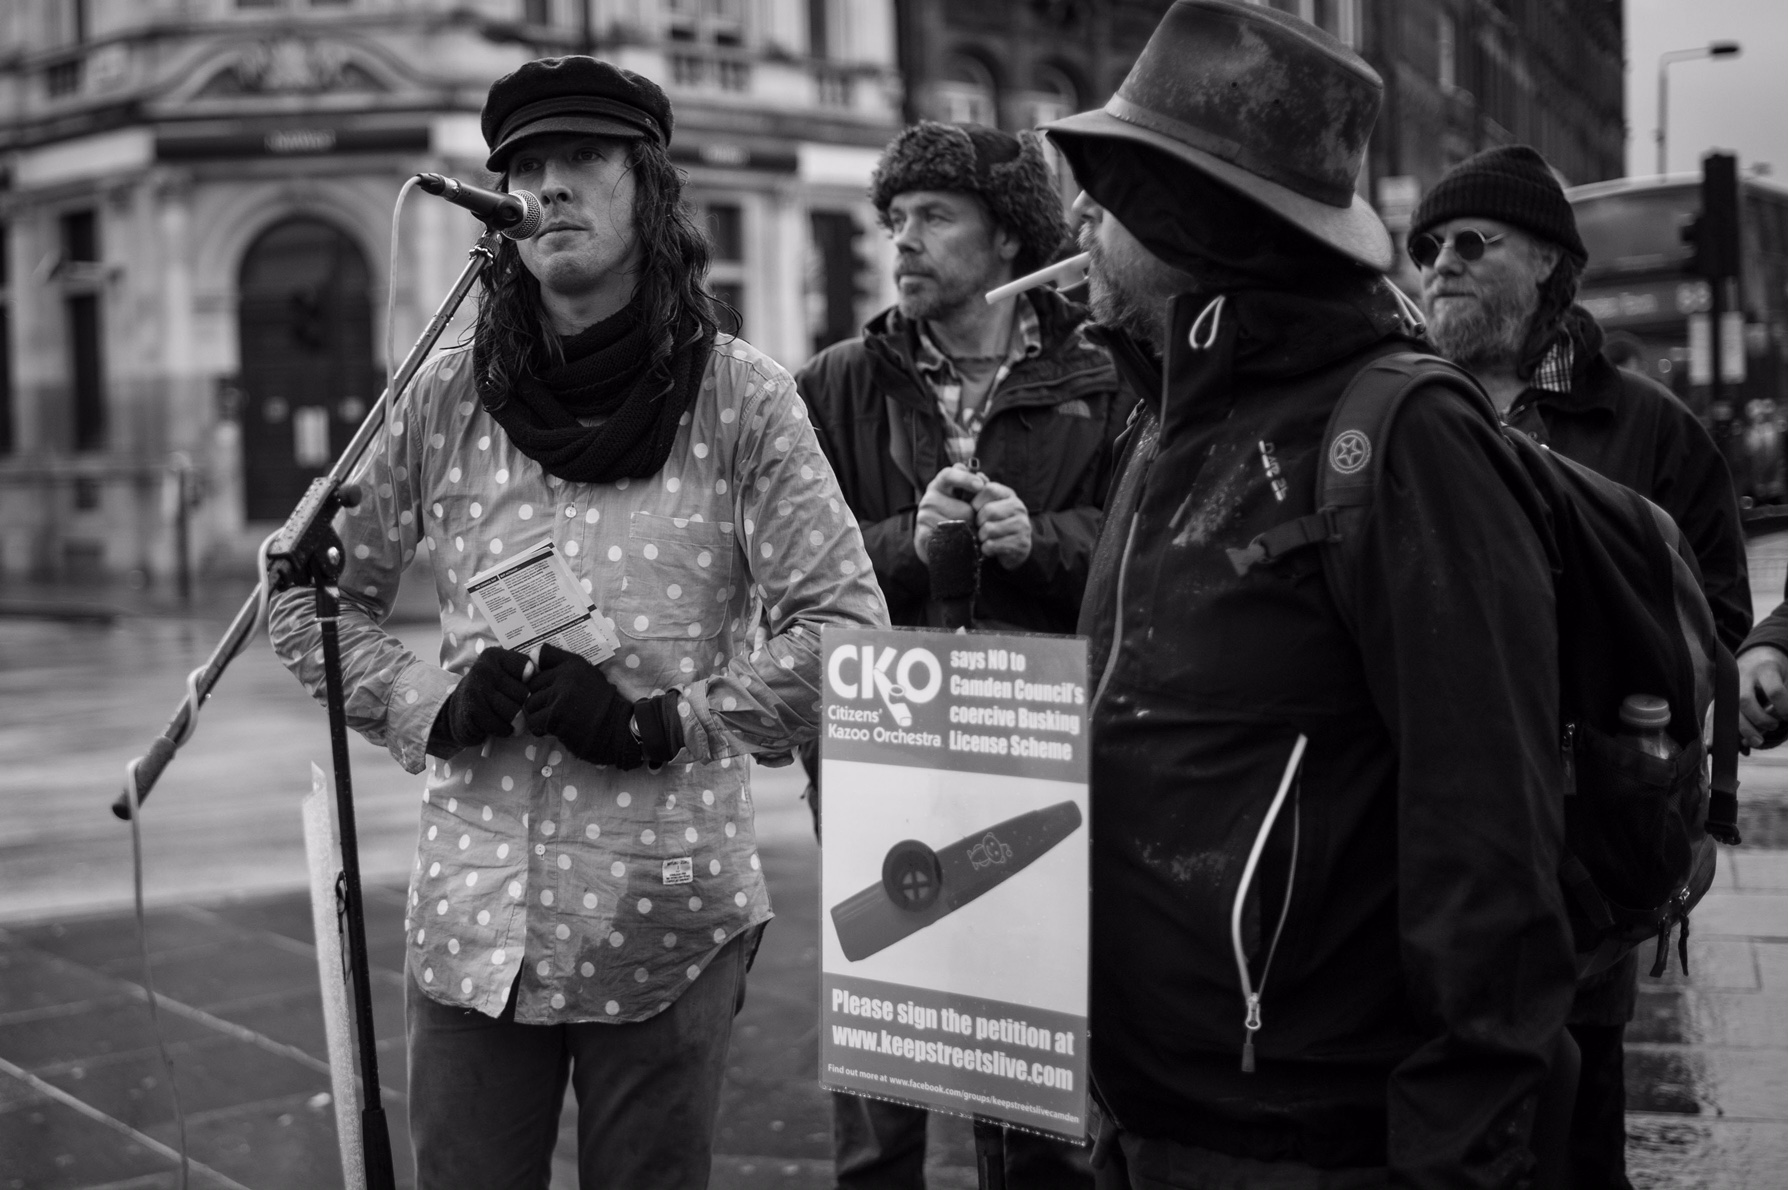 Jonny Walker and the Church of the Holy Kazoo - campaigning for Love and Justice for street performers in Camden Town.